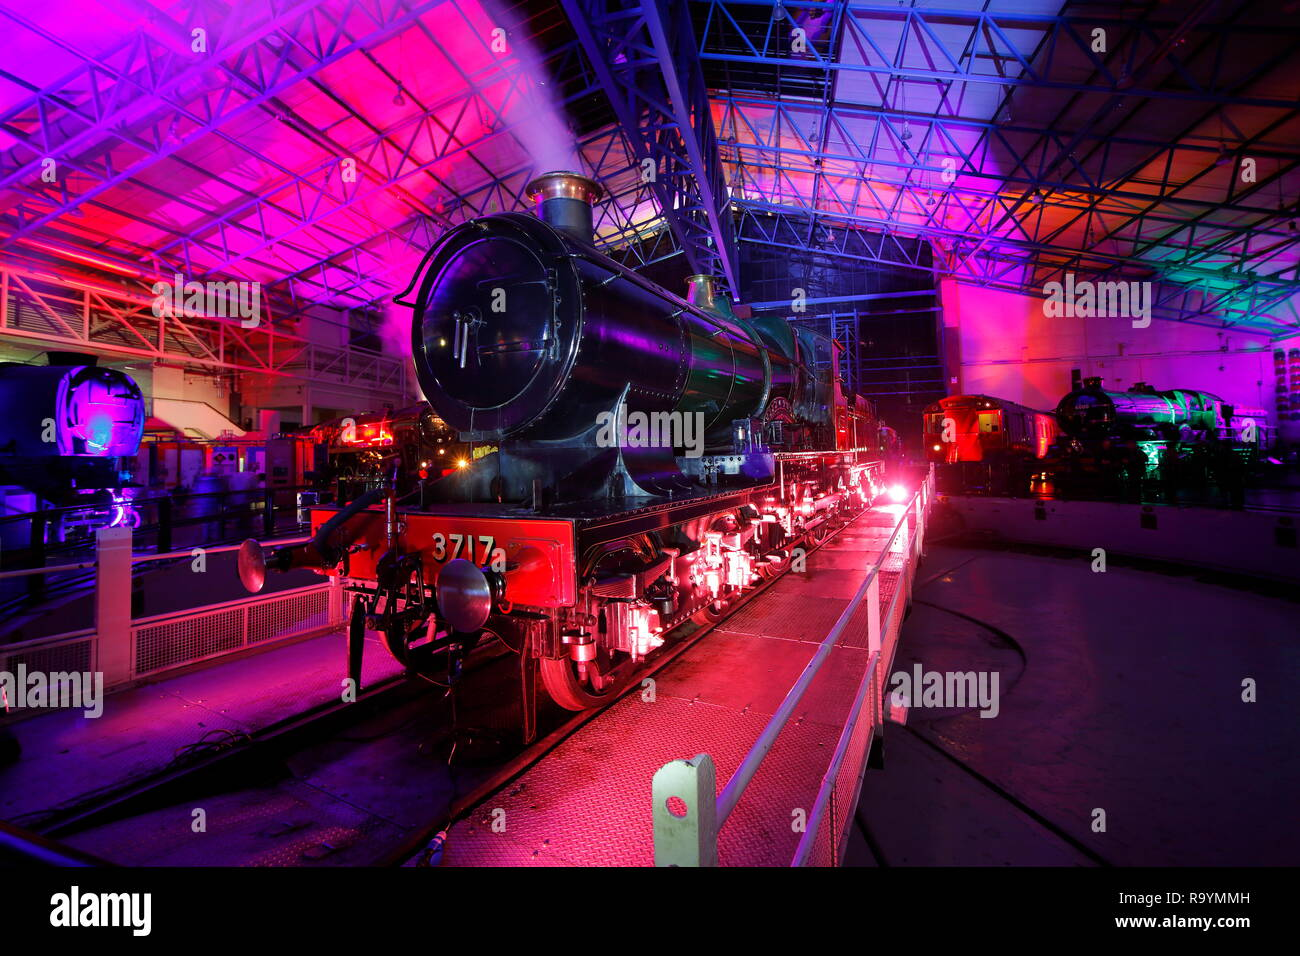 Engine 3717 City of Truro Steam Train at The National Railway Museum in York during an evening of illuminations - Stock Image